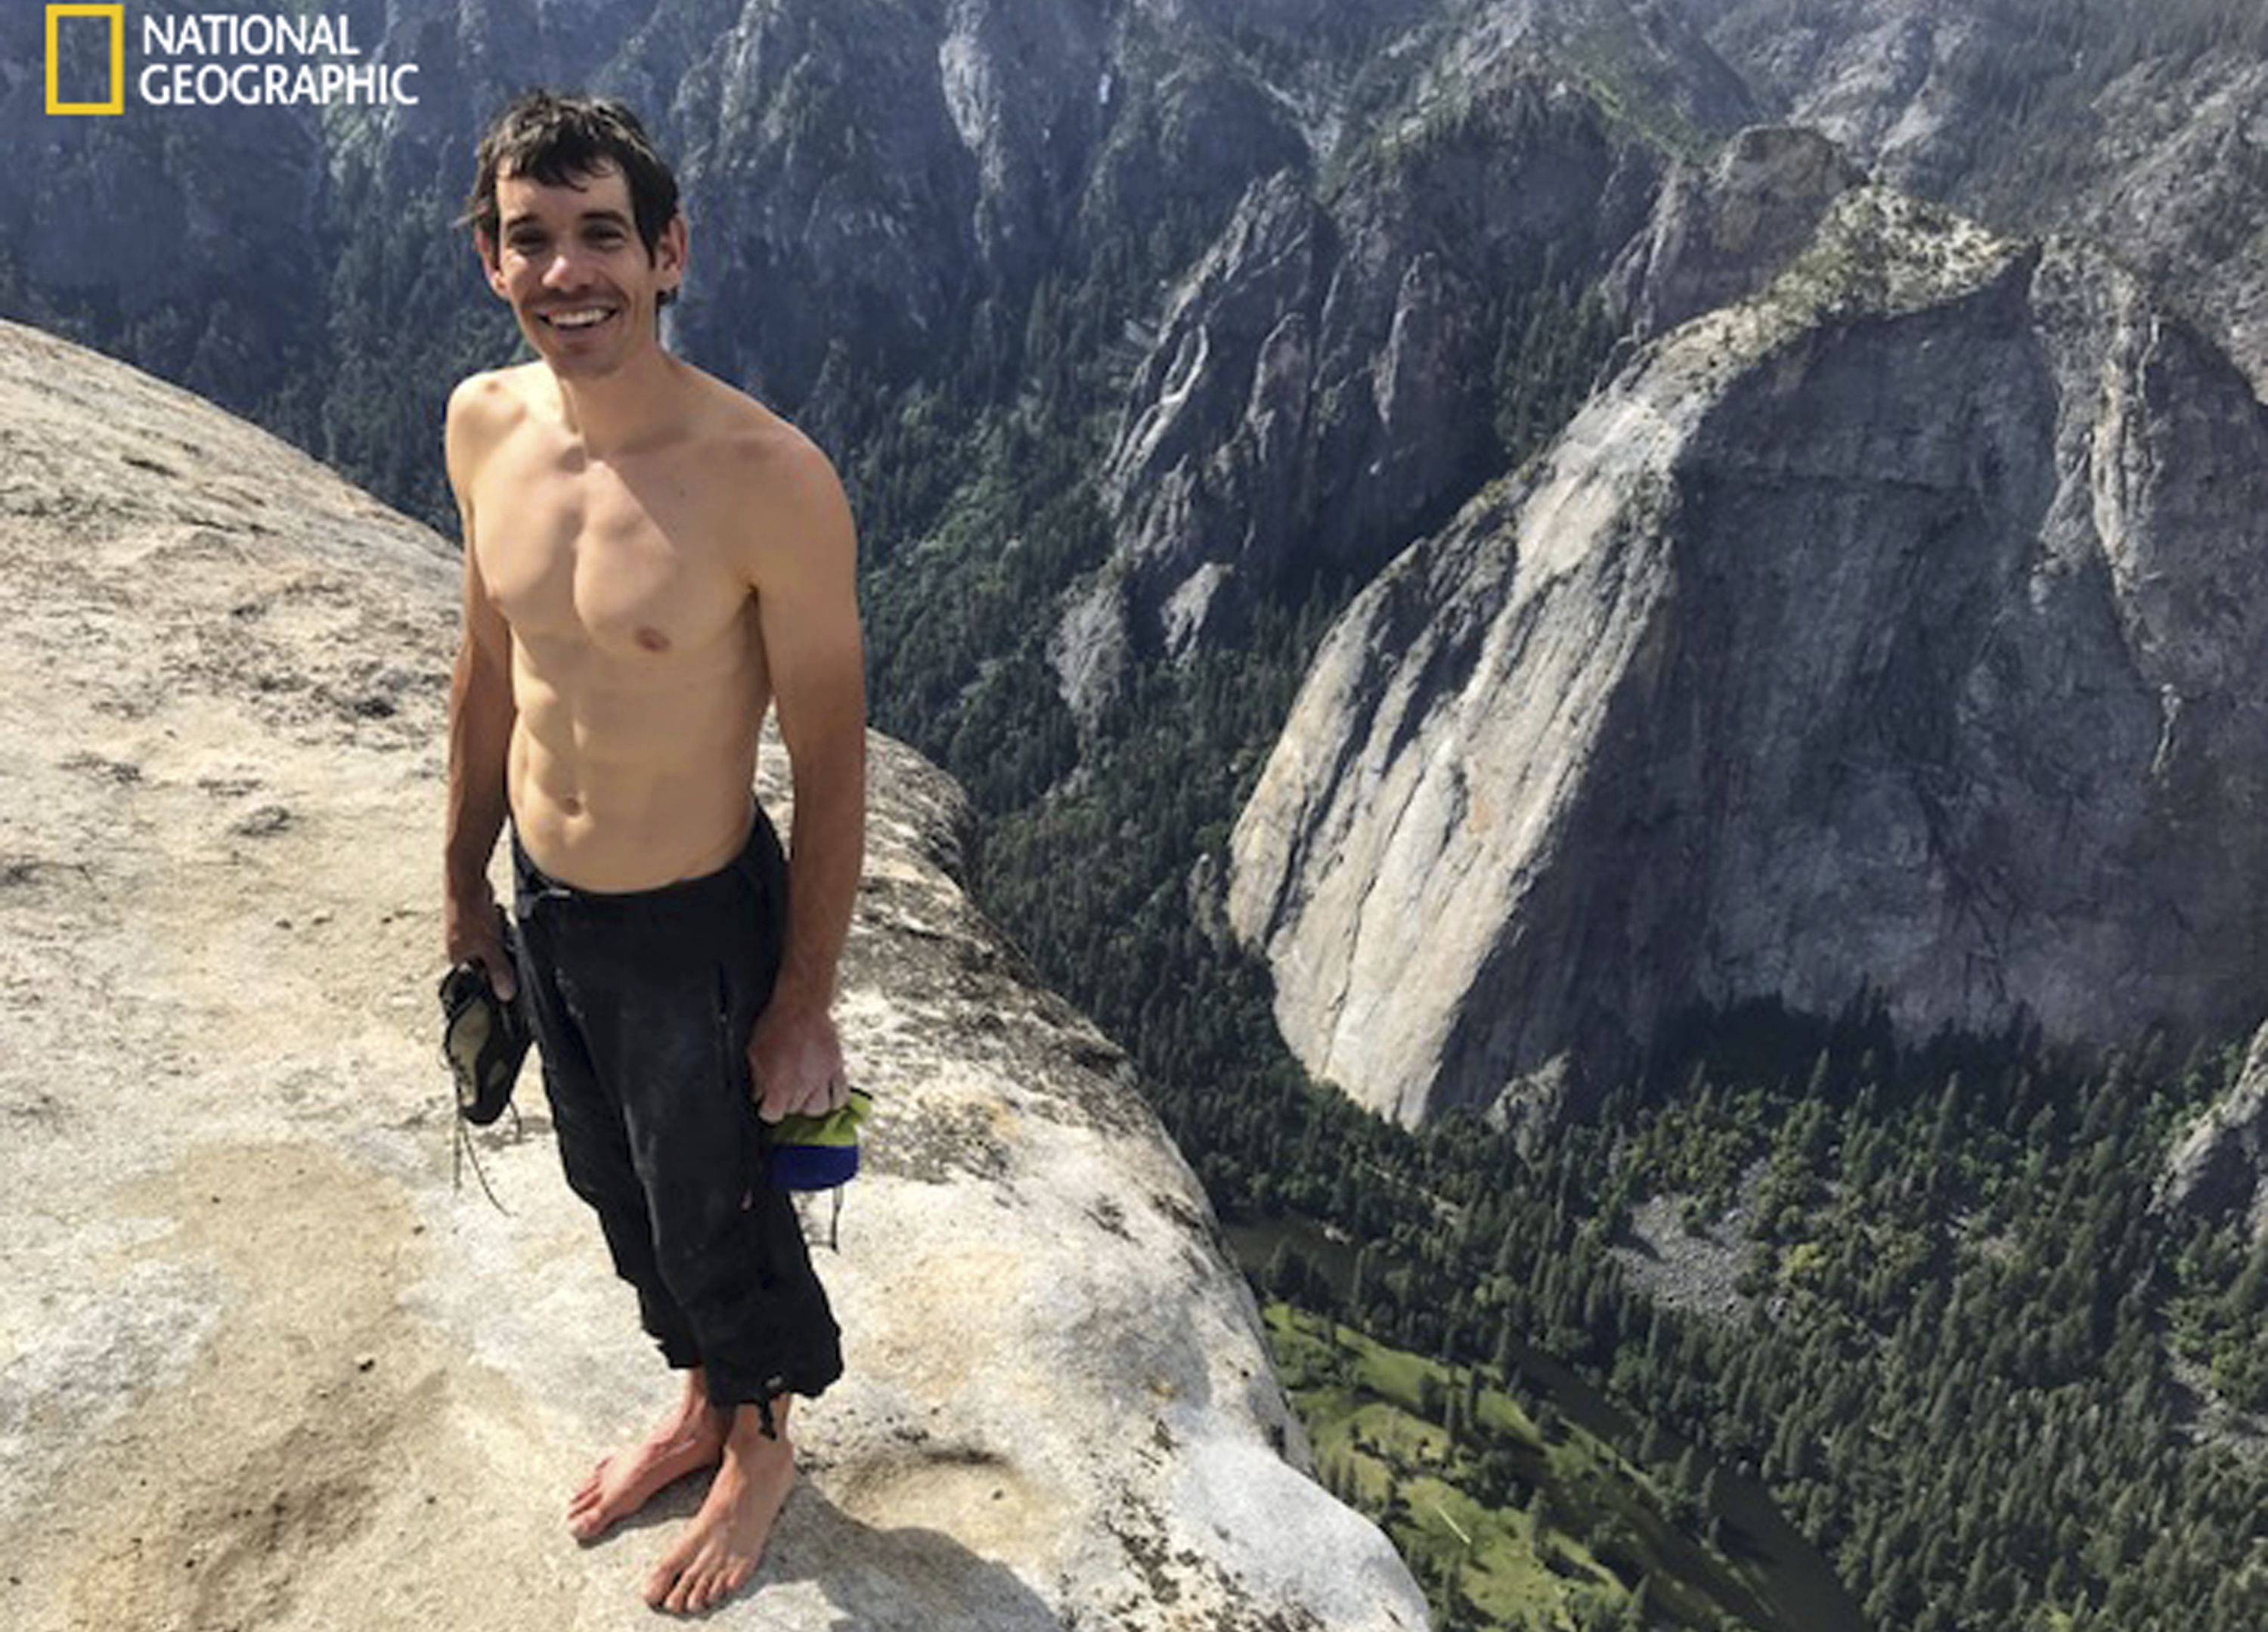 Solo climber is 1st up mighty El Capitan without ropes